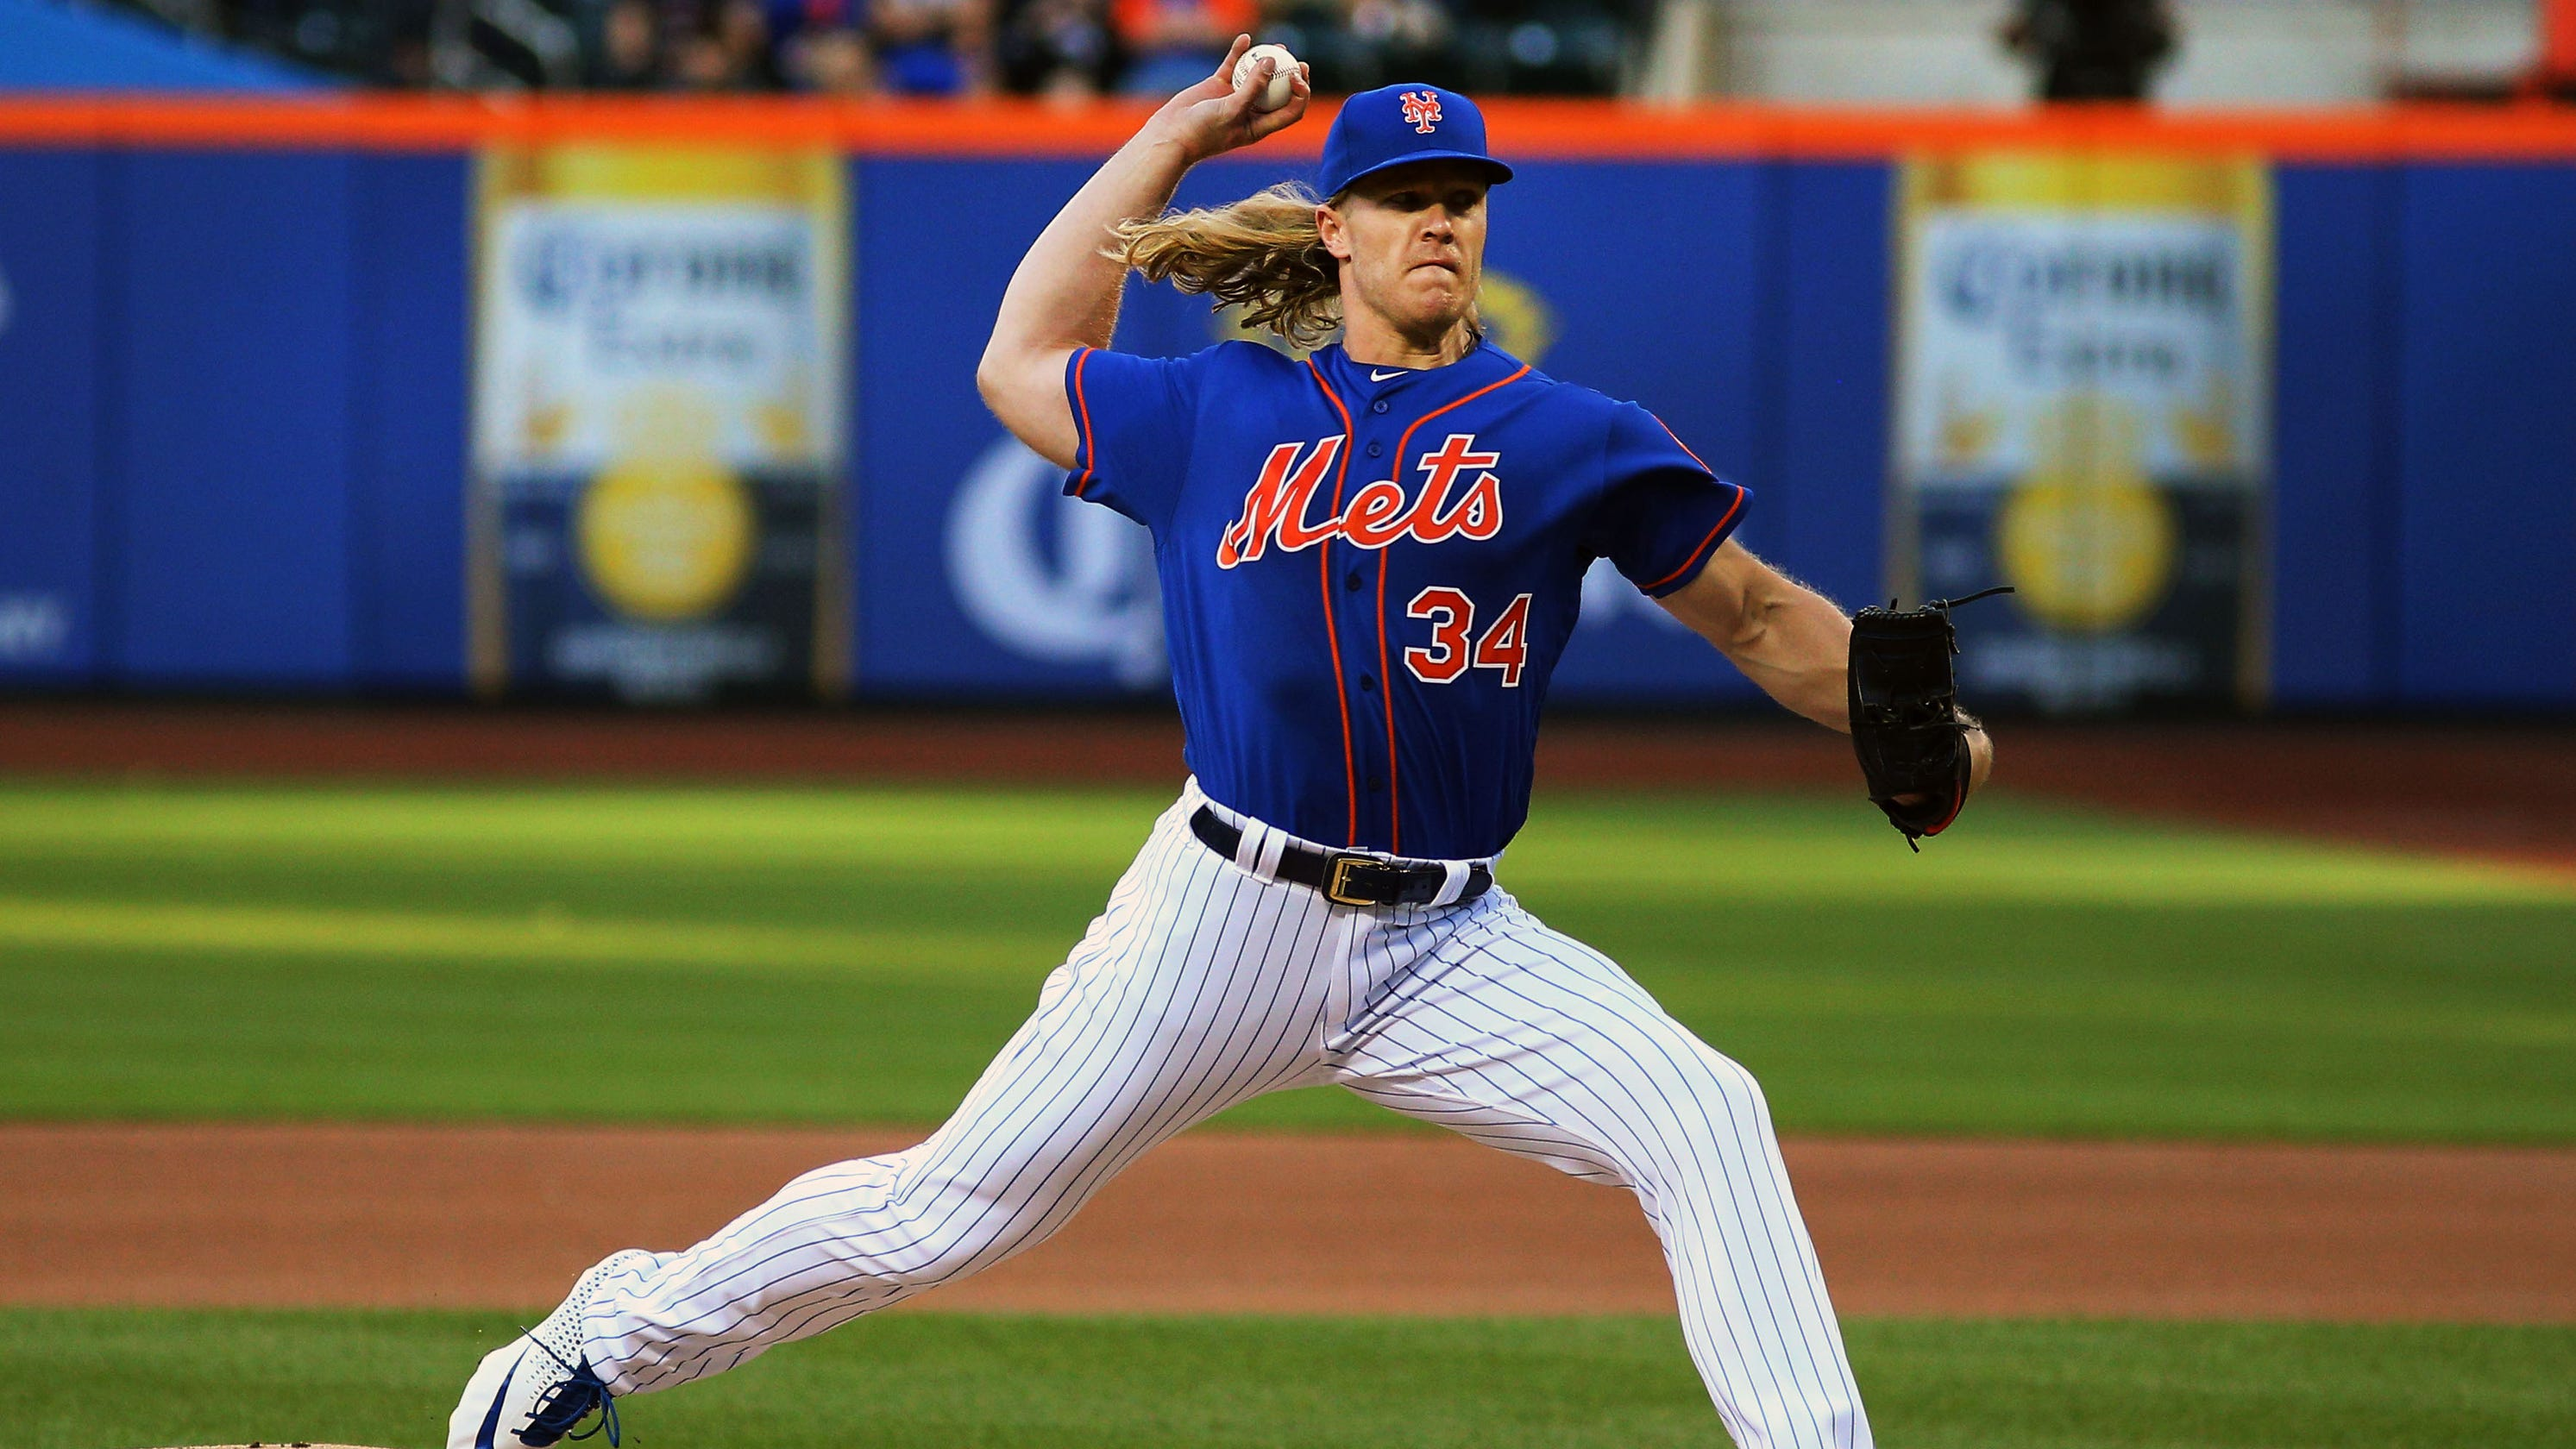 Los Angeles Dodgers, New York Mets Announce Lineups For